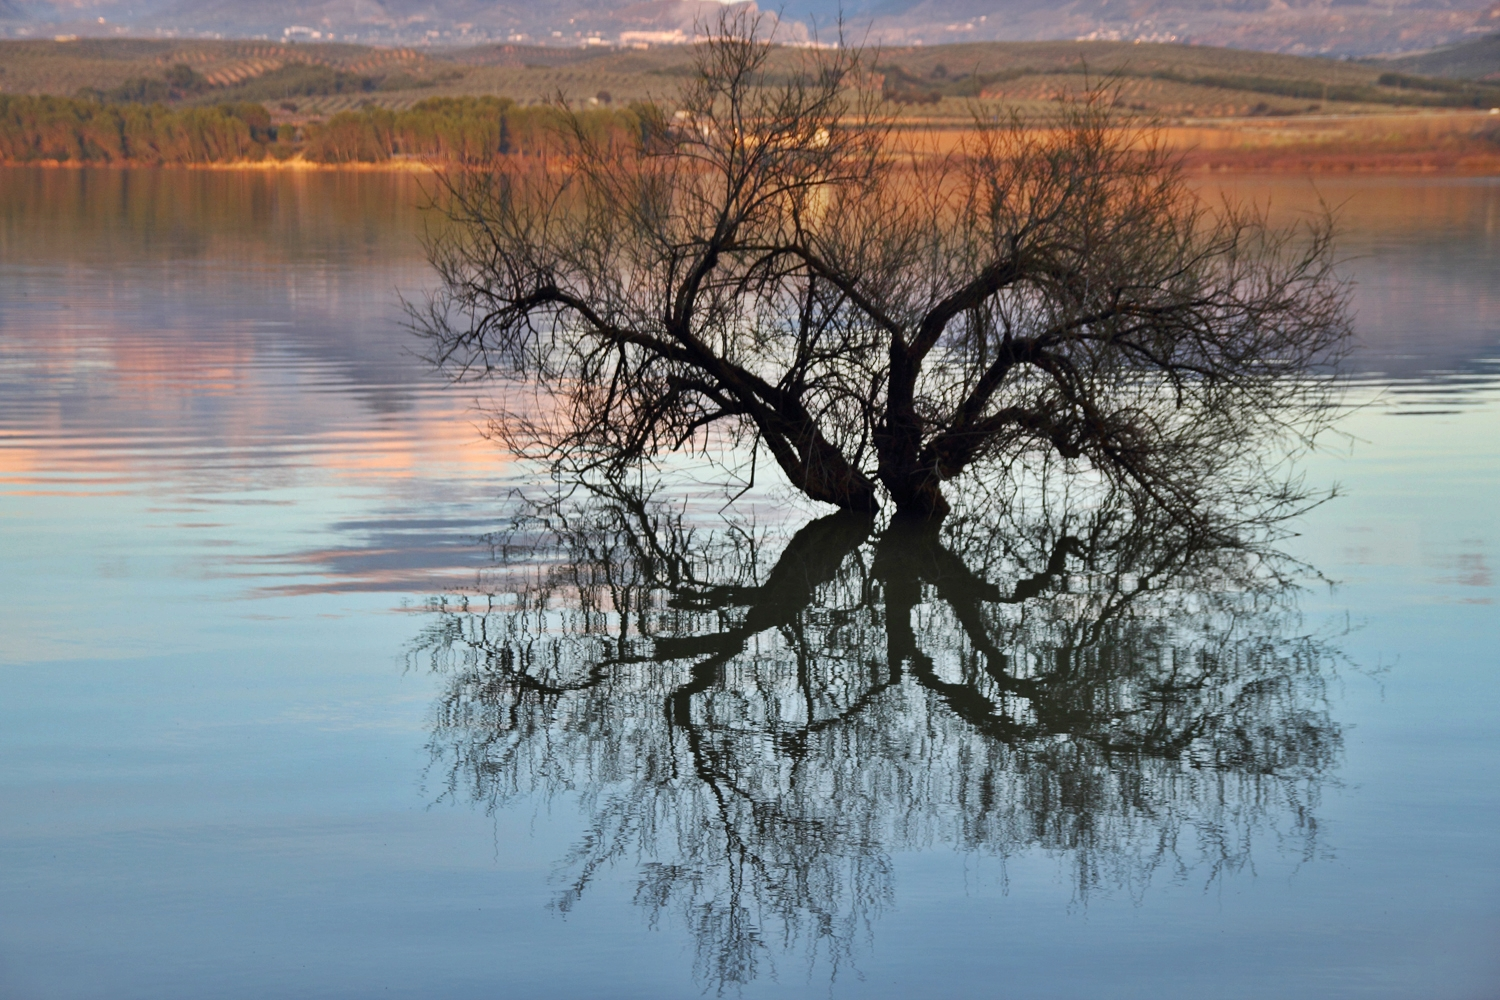 """Embalse de Cubillas"" - Granada - L07718"